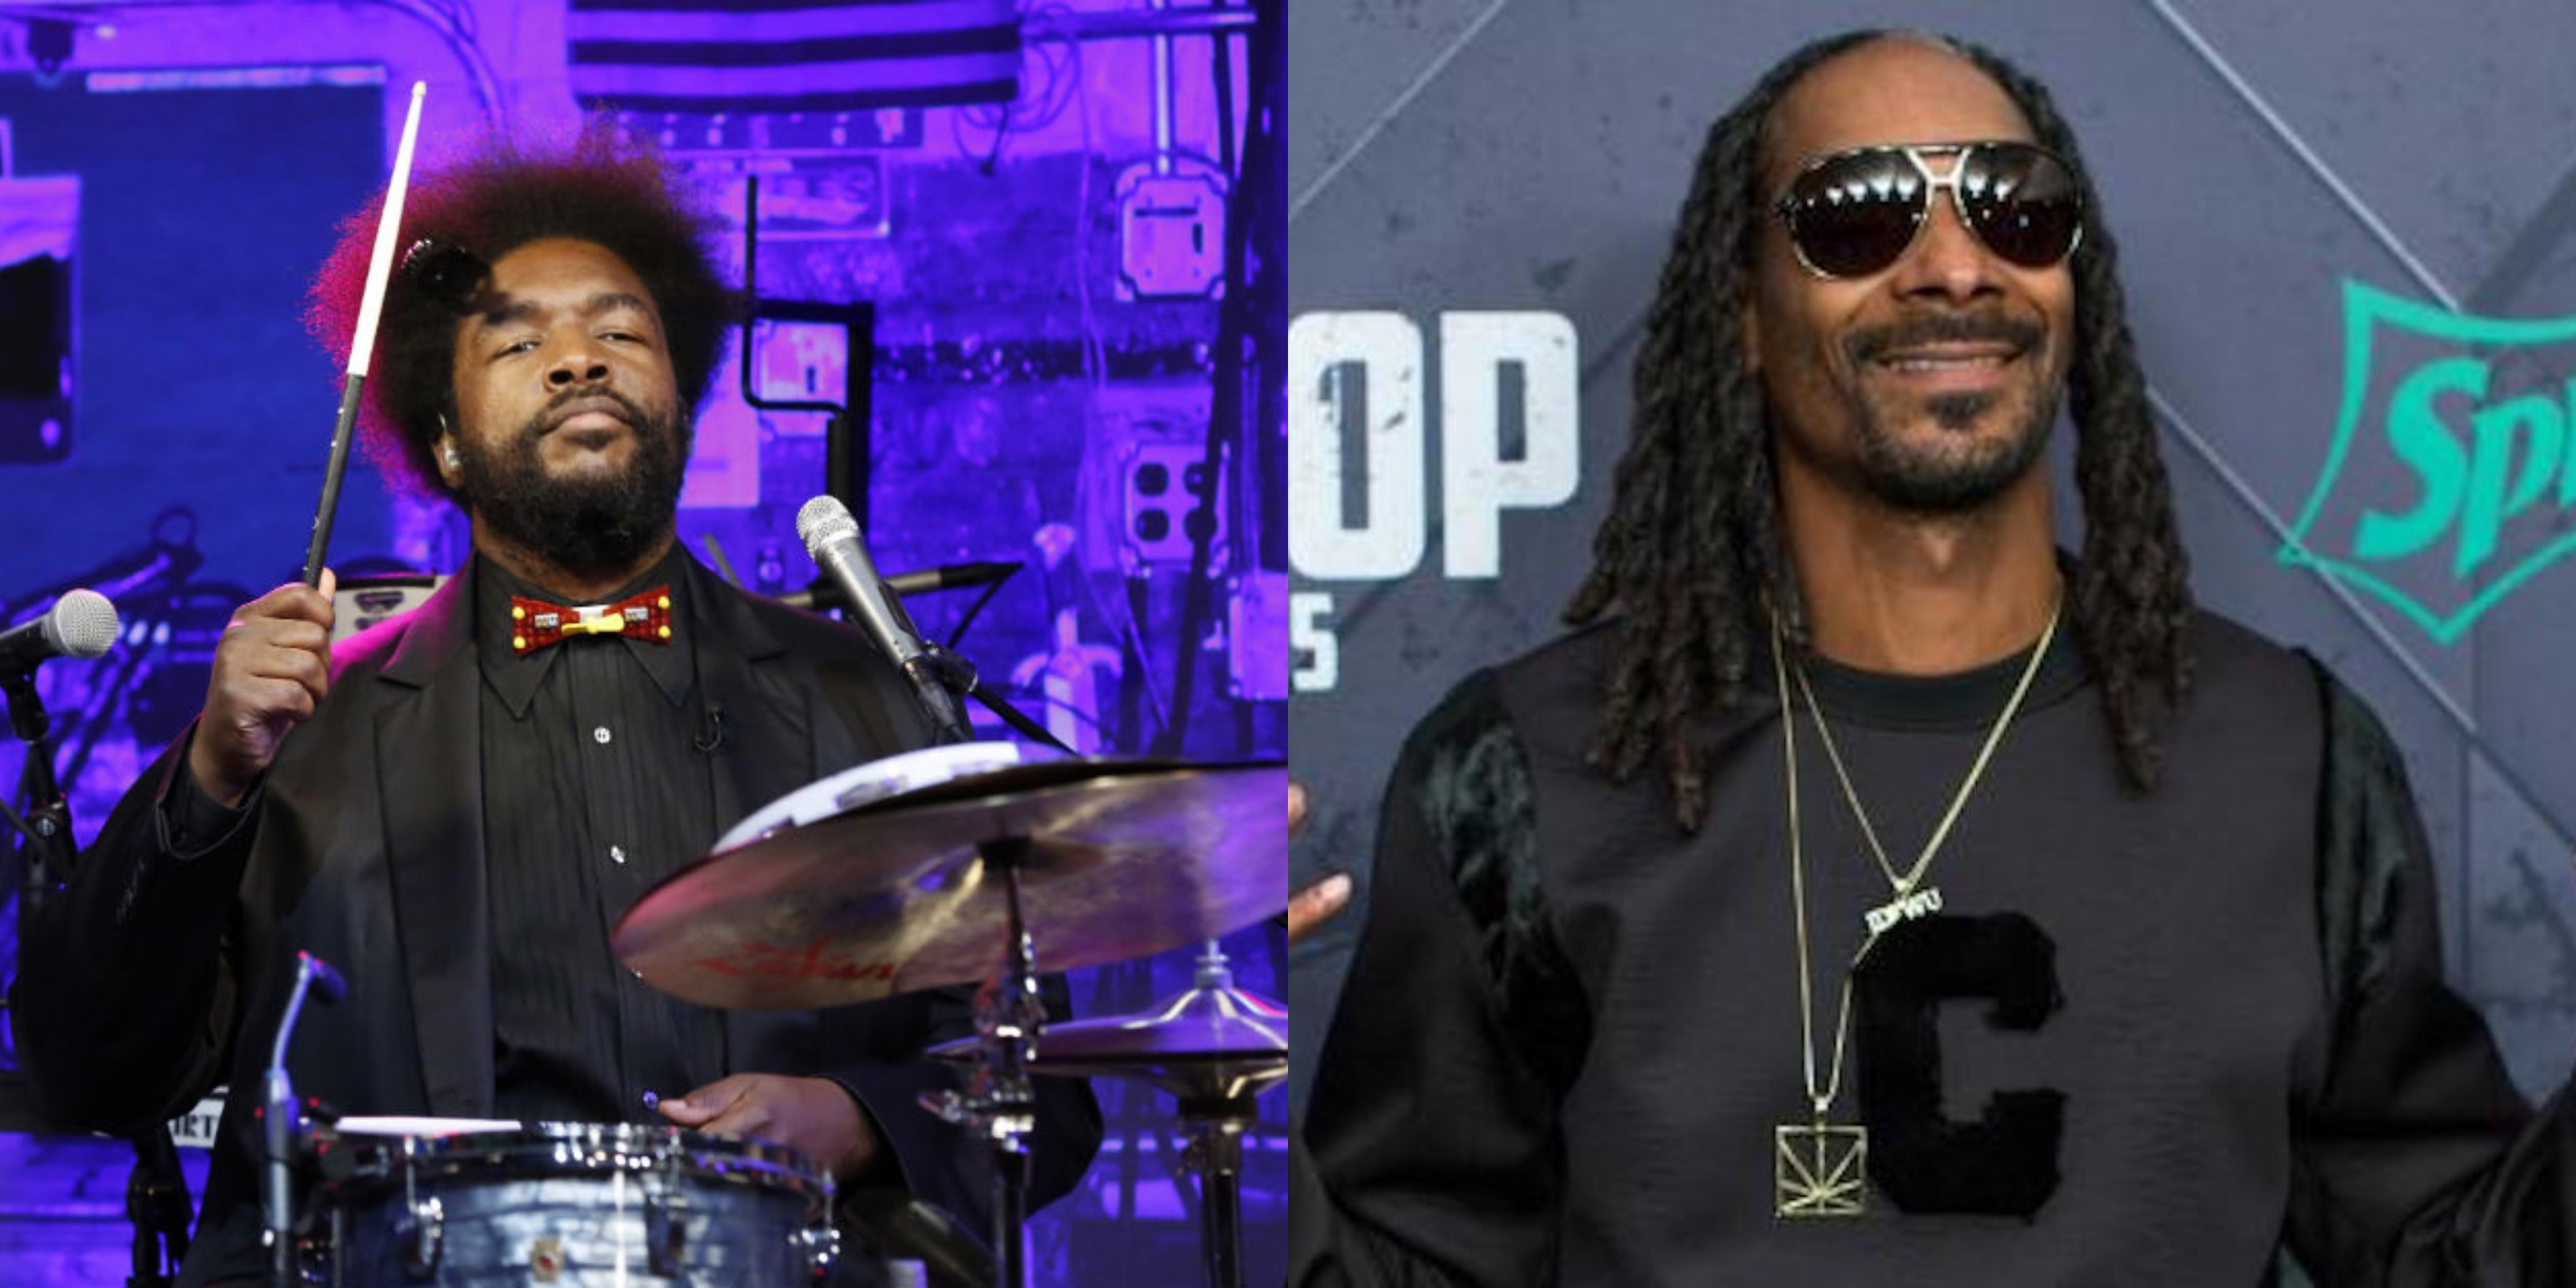 Questlove Reveals Dr. Dre Sampled his Parents in Snoop Dogg's 'Nuthin But A G Thang'